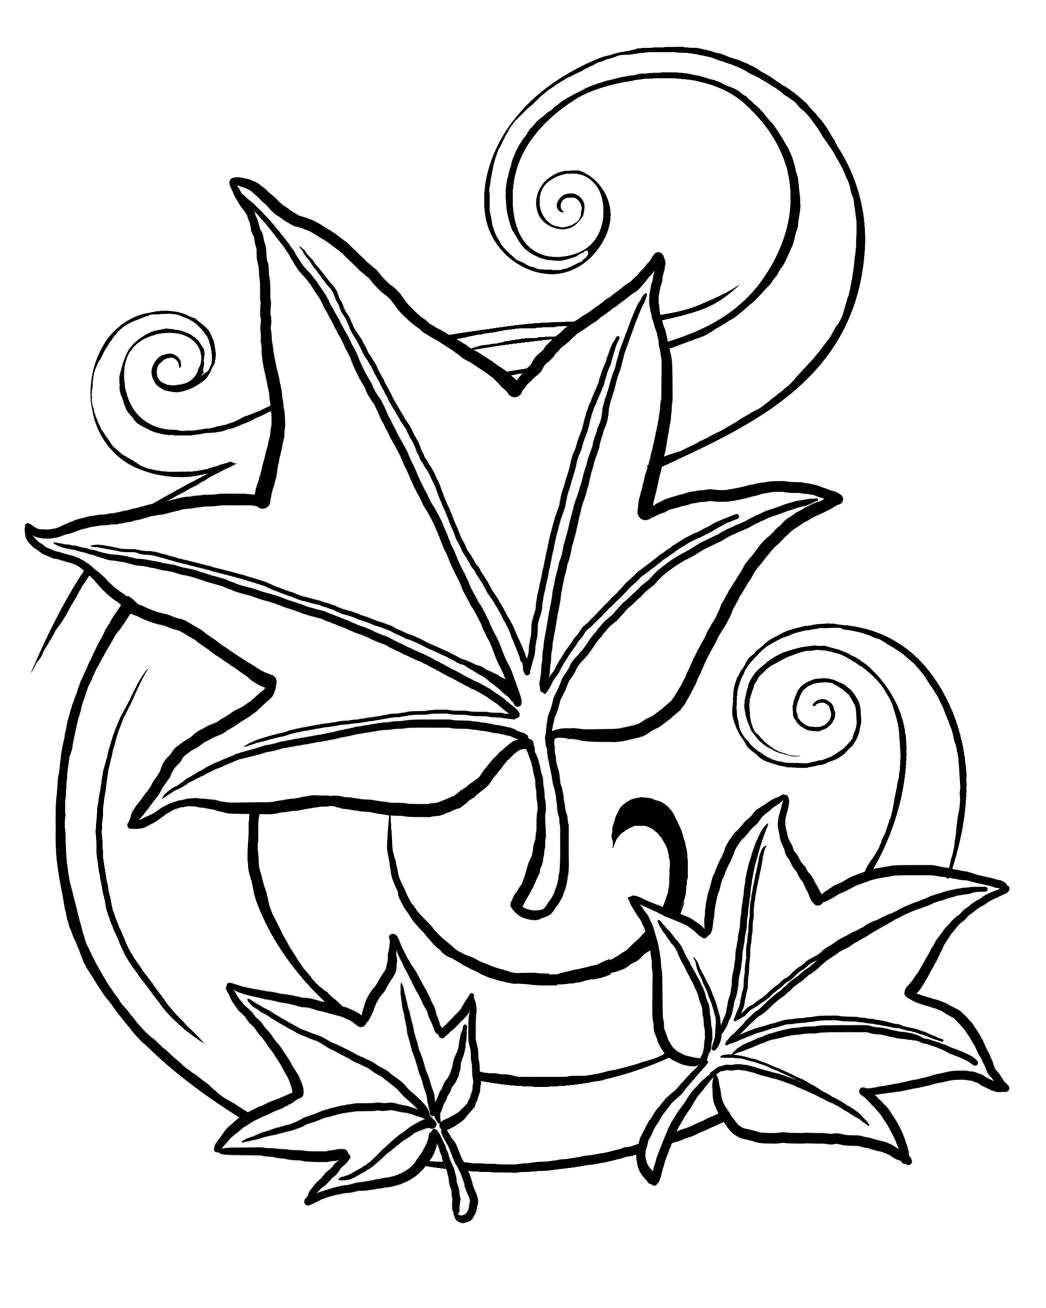 fall leaves coloring fall flowers coloring pages printable free coloring sheets fall leaves coloring